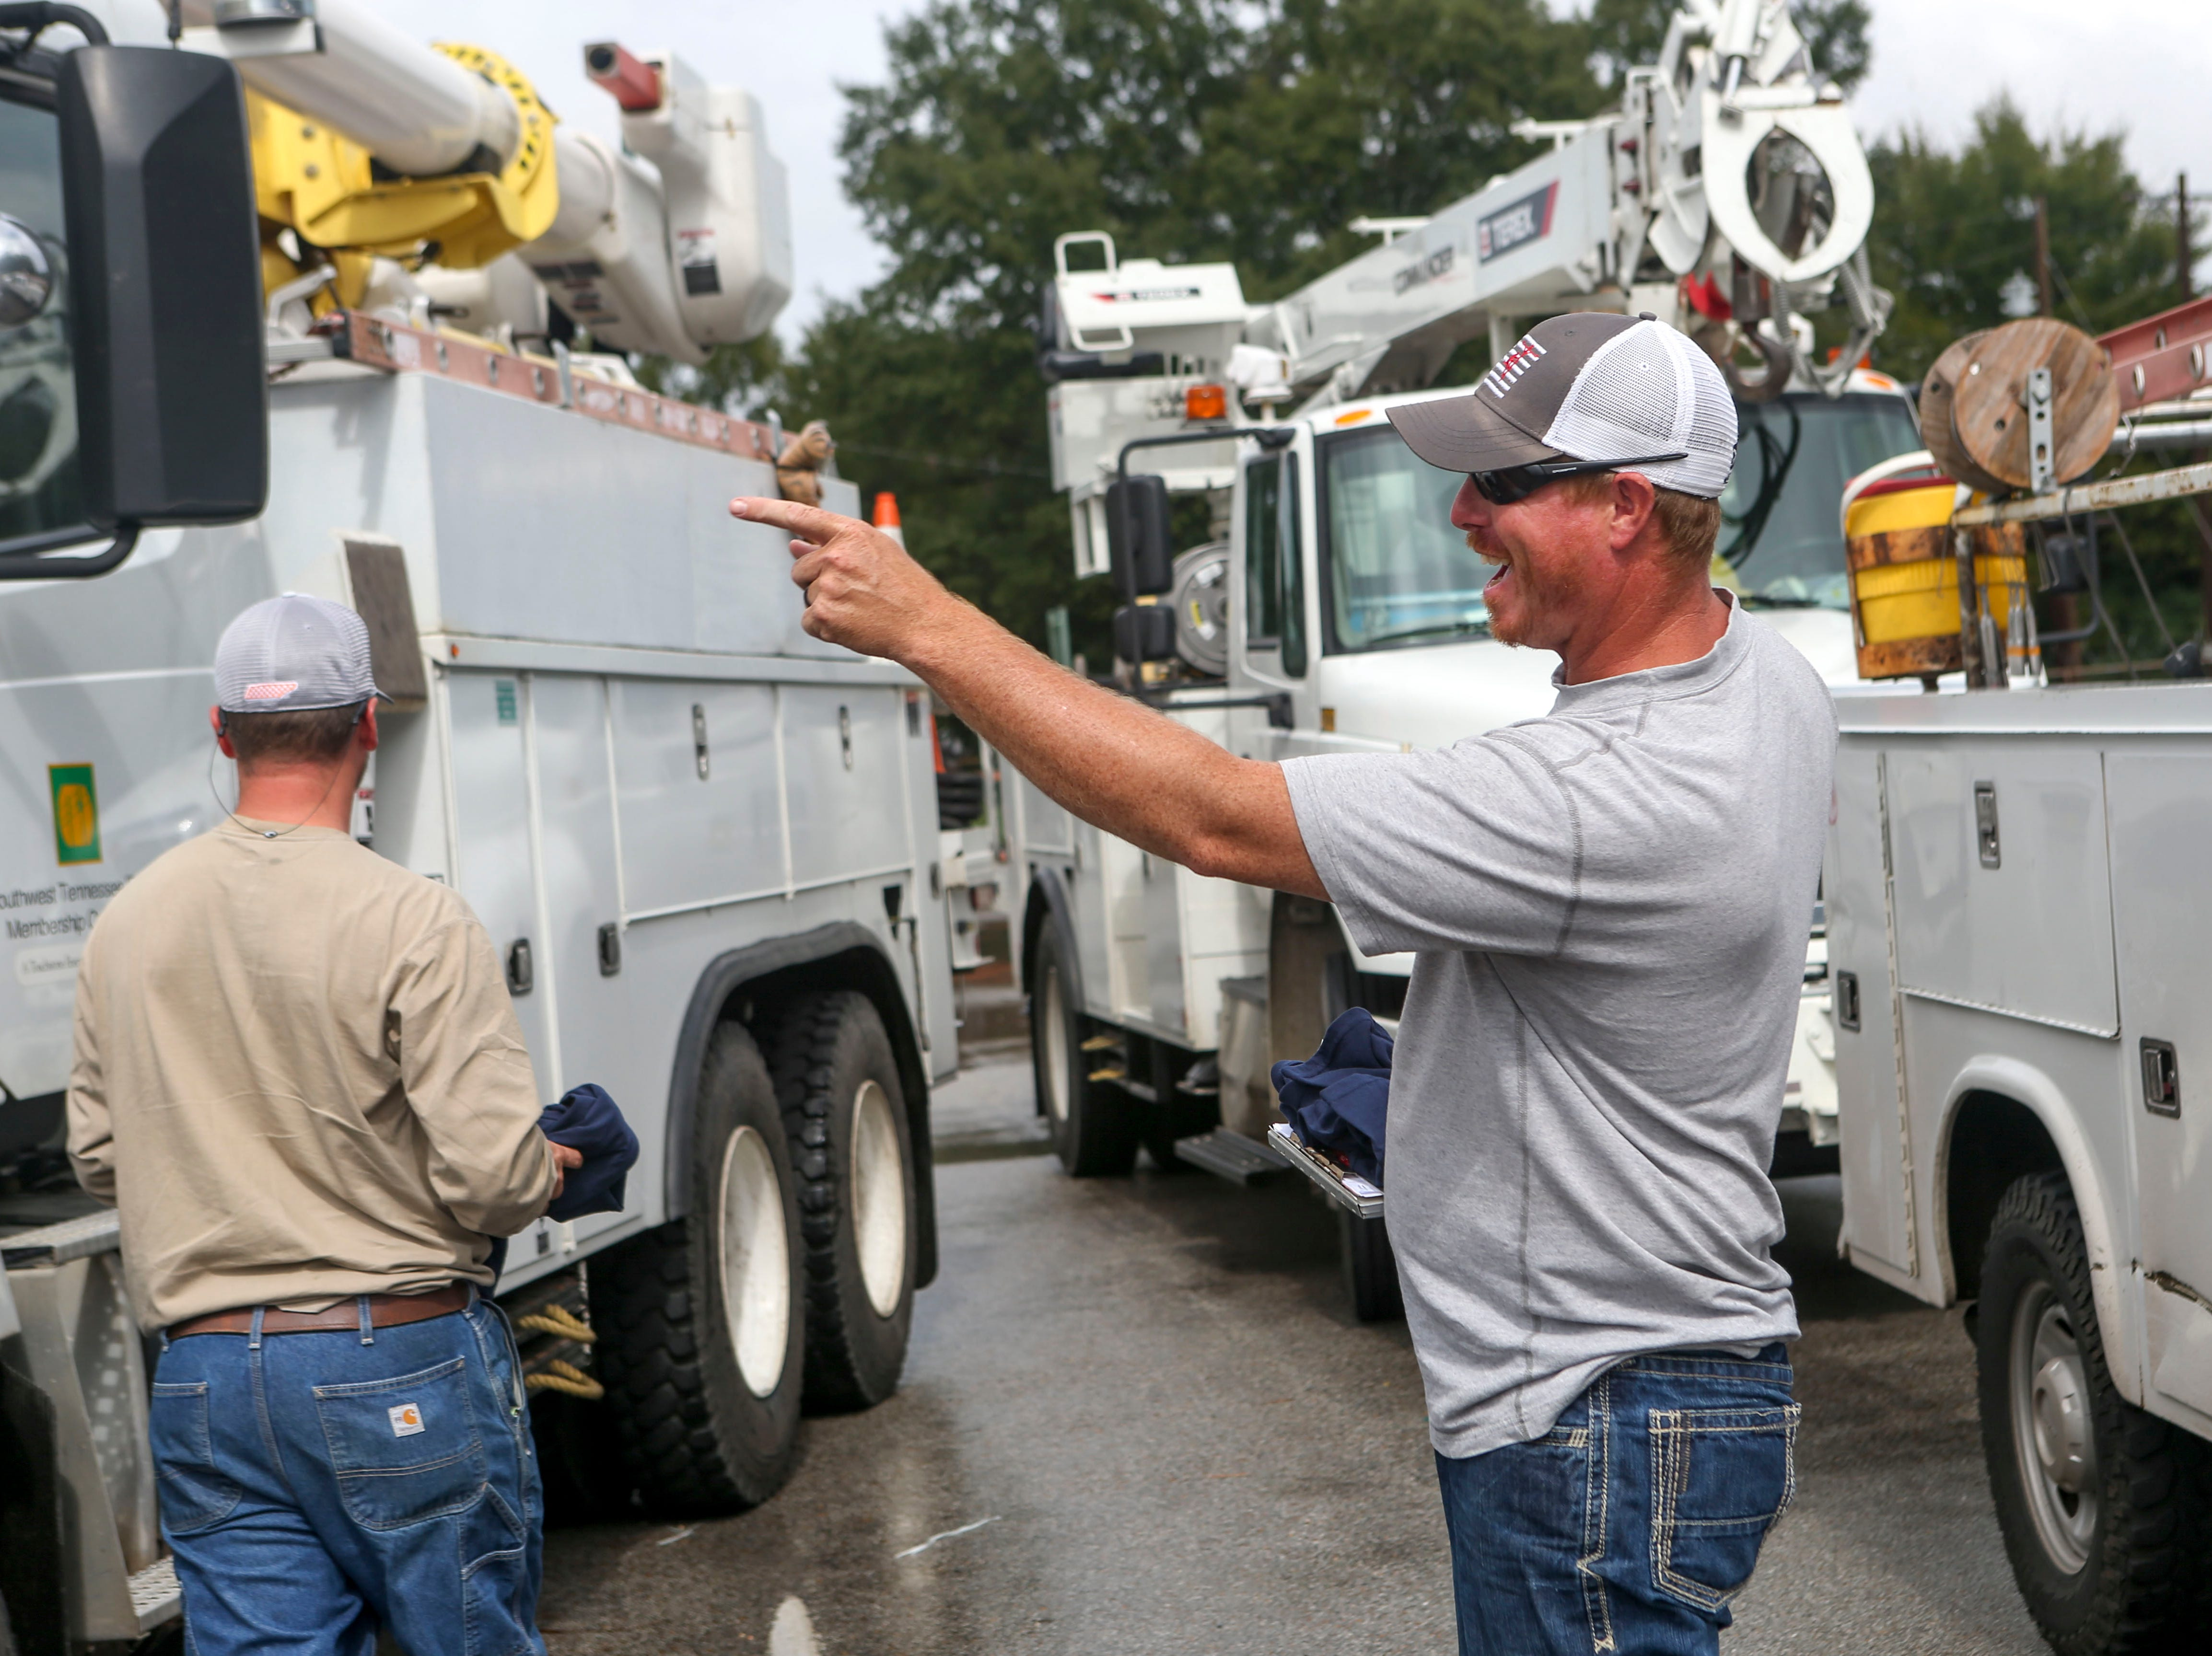 Linemen that just returned from recovery efforts in North Carolina joke around after parking the trucks and meeting with their managers at Southwest Tennessee Electric in Jackson, Tenn., Monday, Sept. 24, 2018.